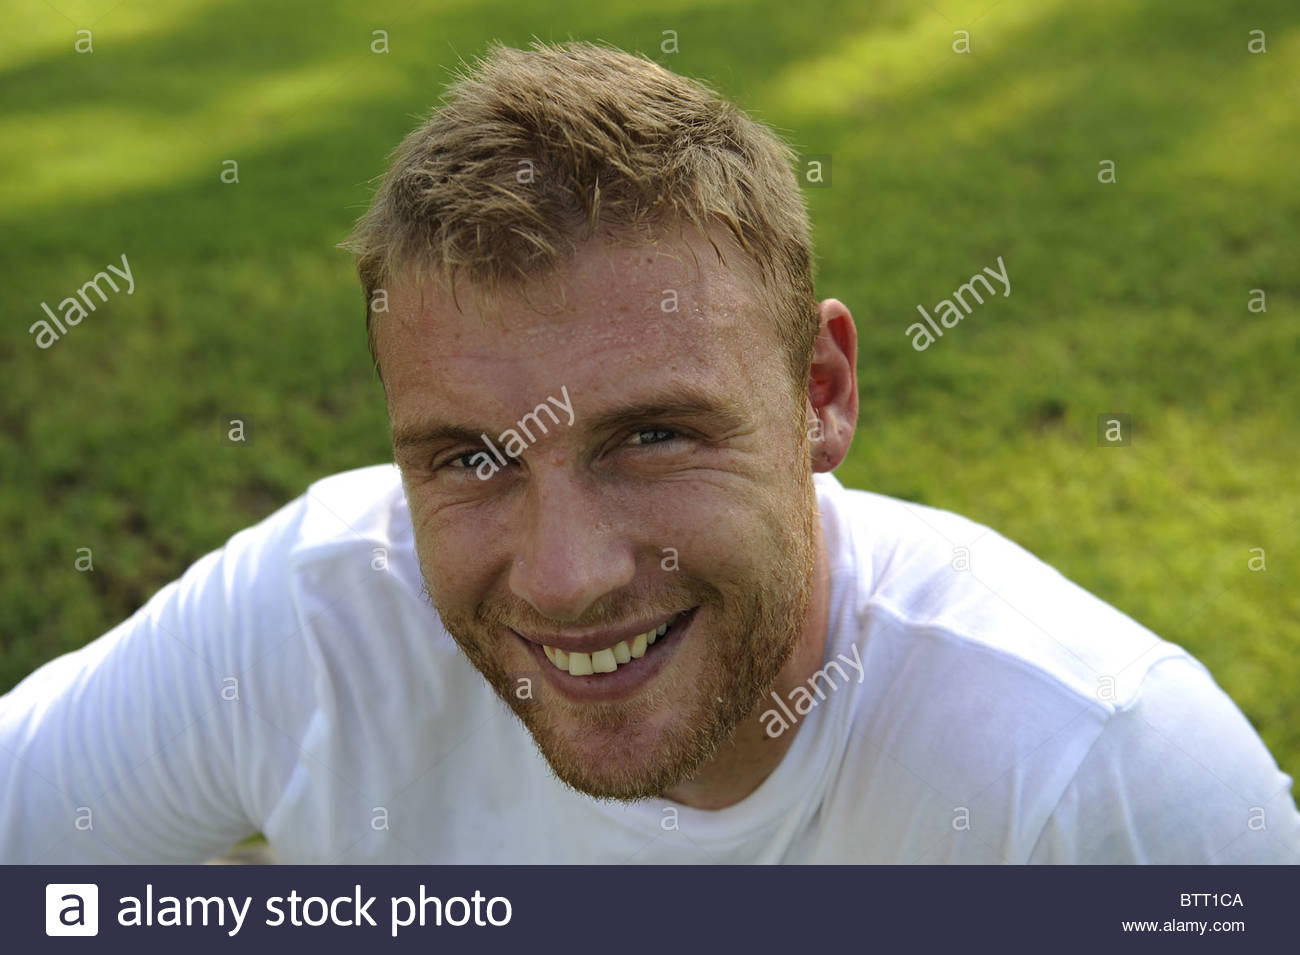 Andrew Freddie Flintoff Feature Jumeirah Beach Hotel Dubai Pic Andy Hooper CRICKETERS CRICKETER CRICKET PLAYER SPORTSPERSON - andrew-freddie-flintoff-feature-jumeirah-beach-hotel-dubai-pic-andy-BTT1CA